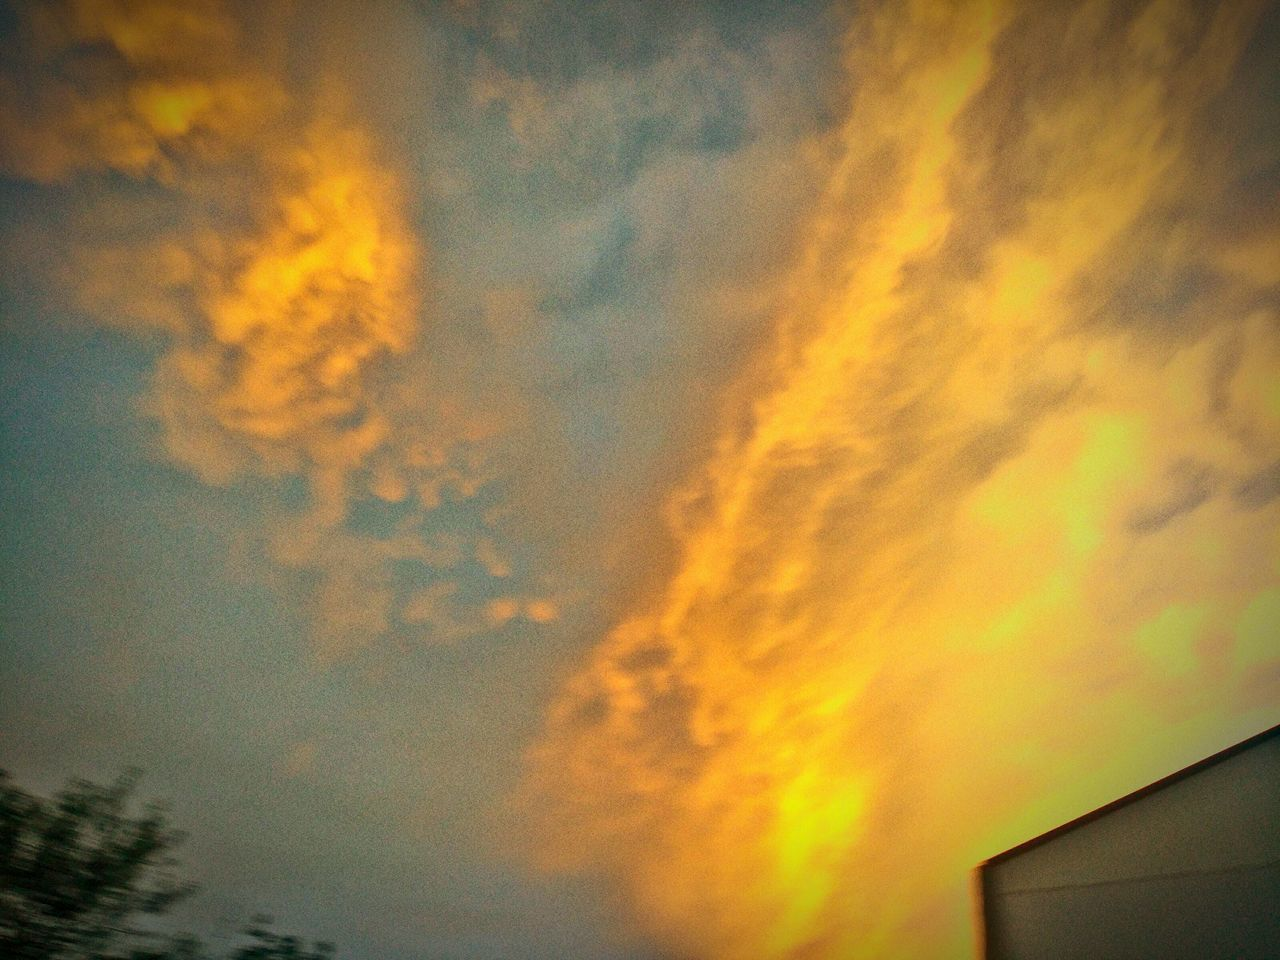 sky, cloud - sky, low angle view, no people, beauty in nature, sunset, nature, outdoors, built structure, scenics, building exterior, architecture, storm cloud, day